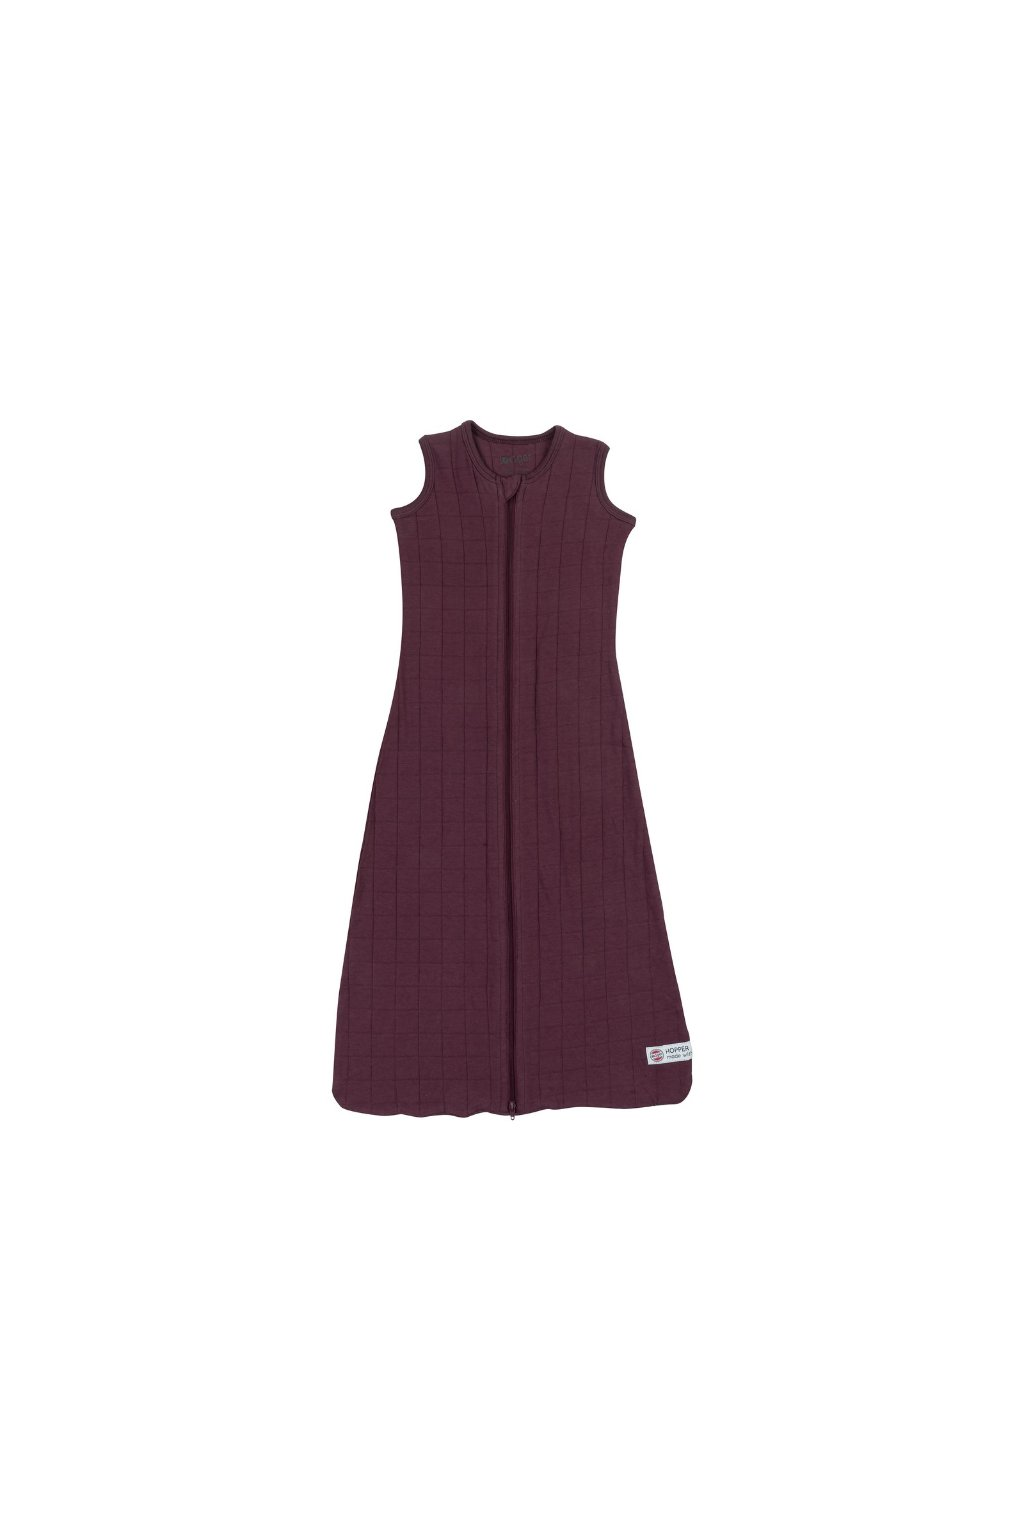 Spací vak Hopper Sleeveless Solid Nocture 50/62 | Lodger